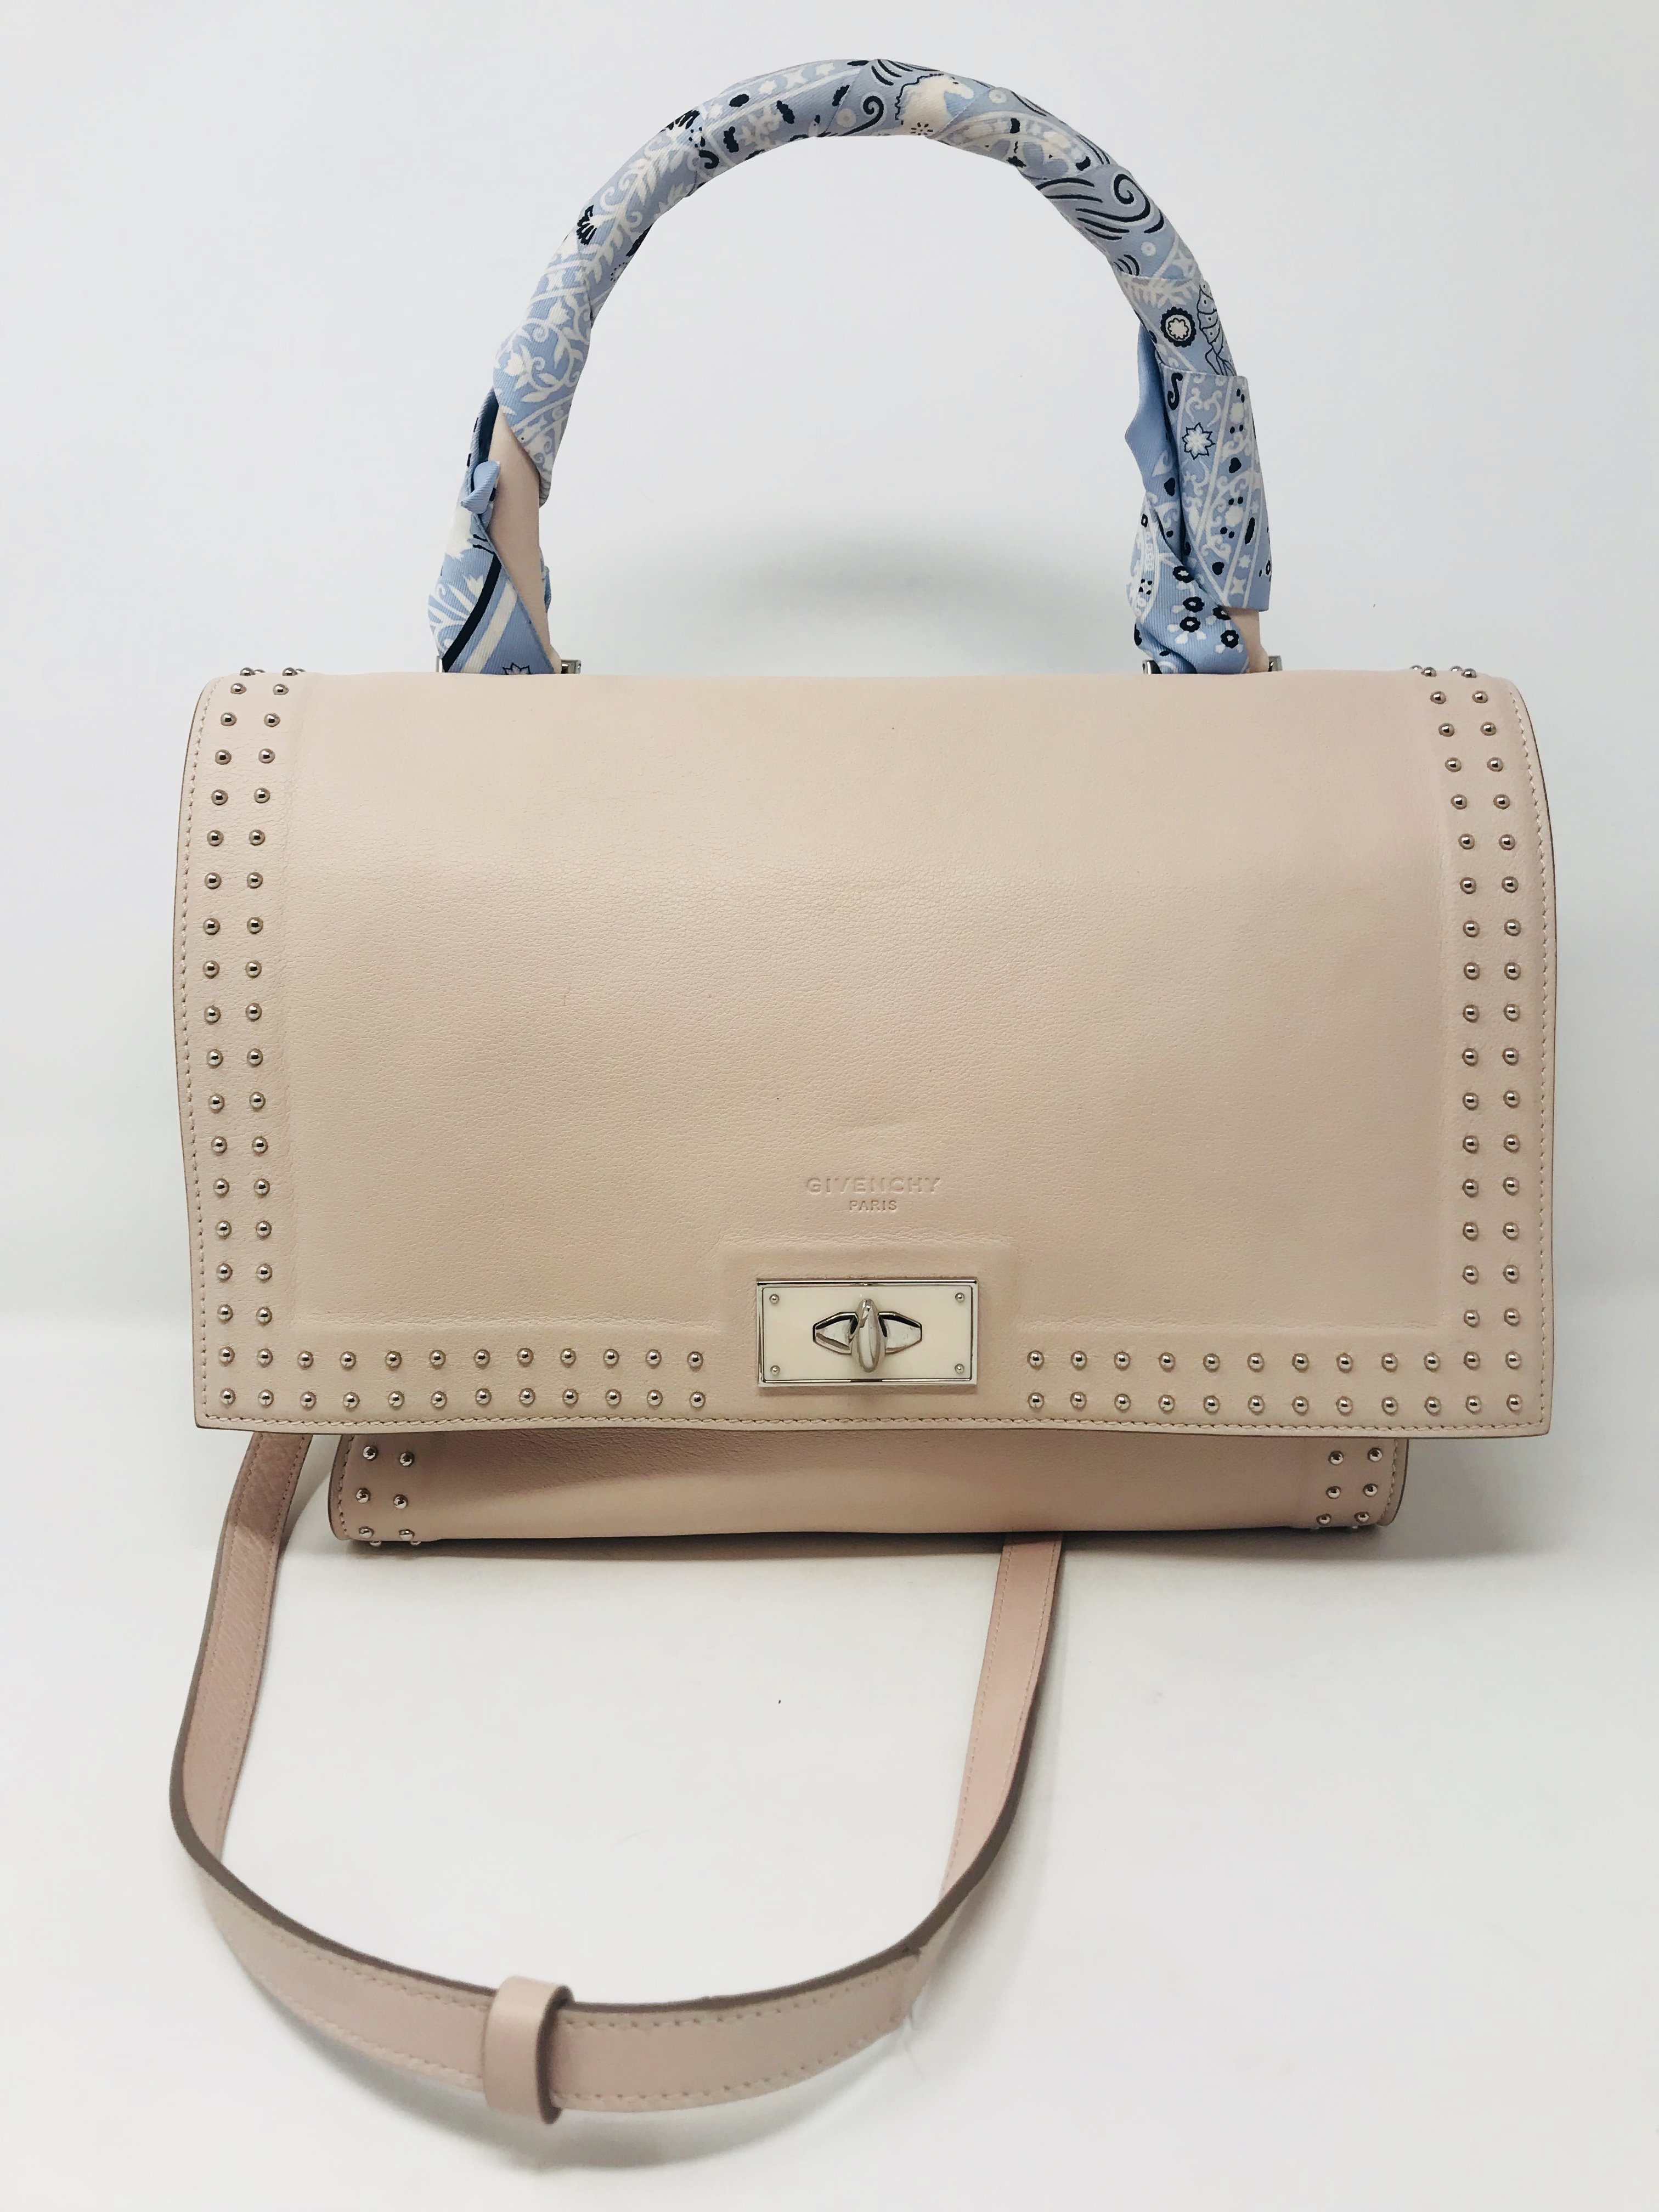 Givenchy Purses, Handbags Price: $895.99